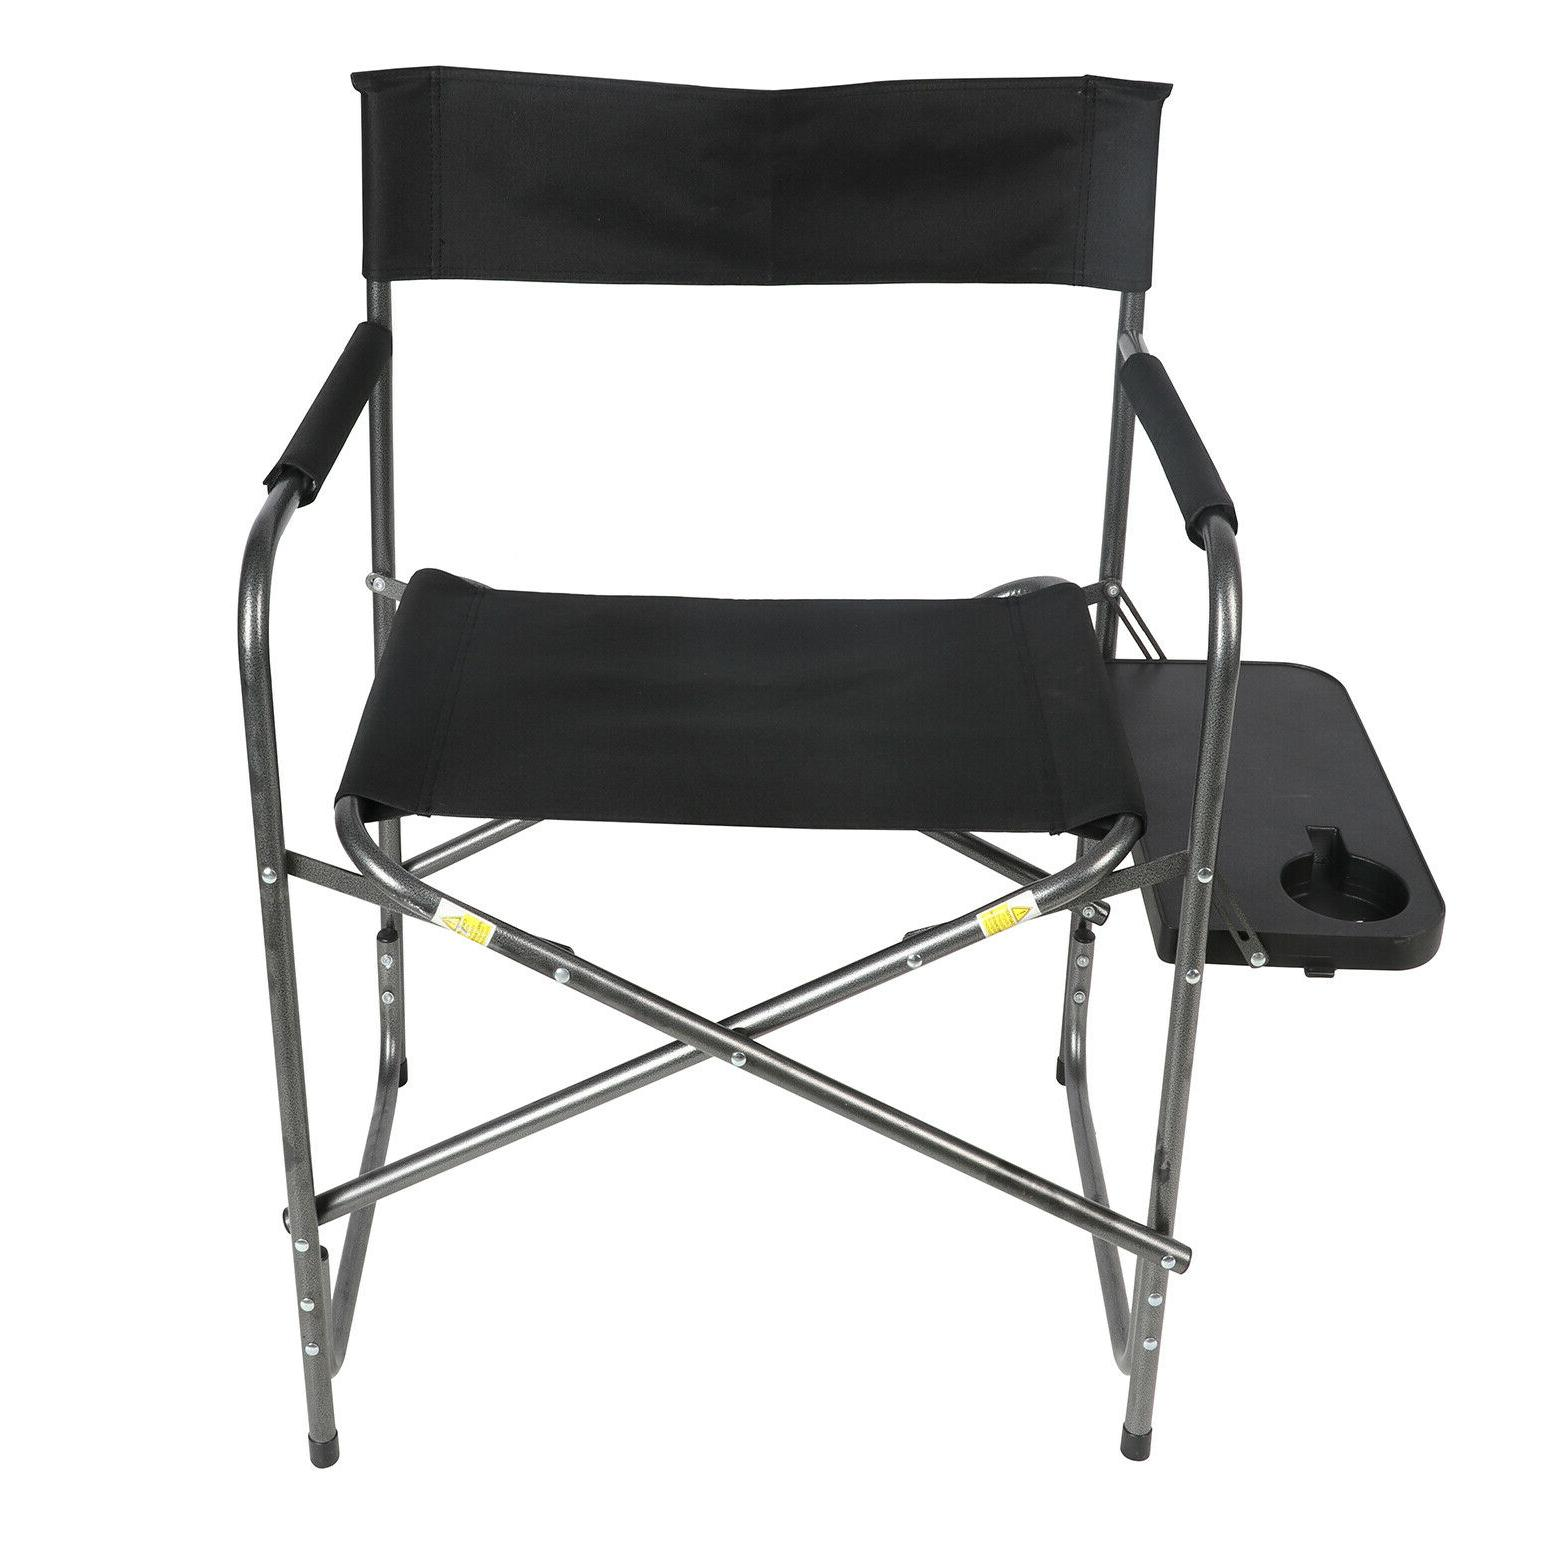 Foldable Director's Camping Seat Backyard Outdoor Lawn